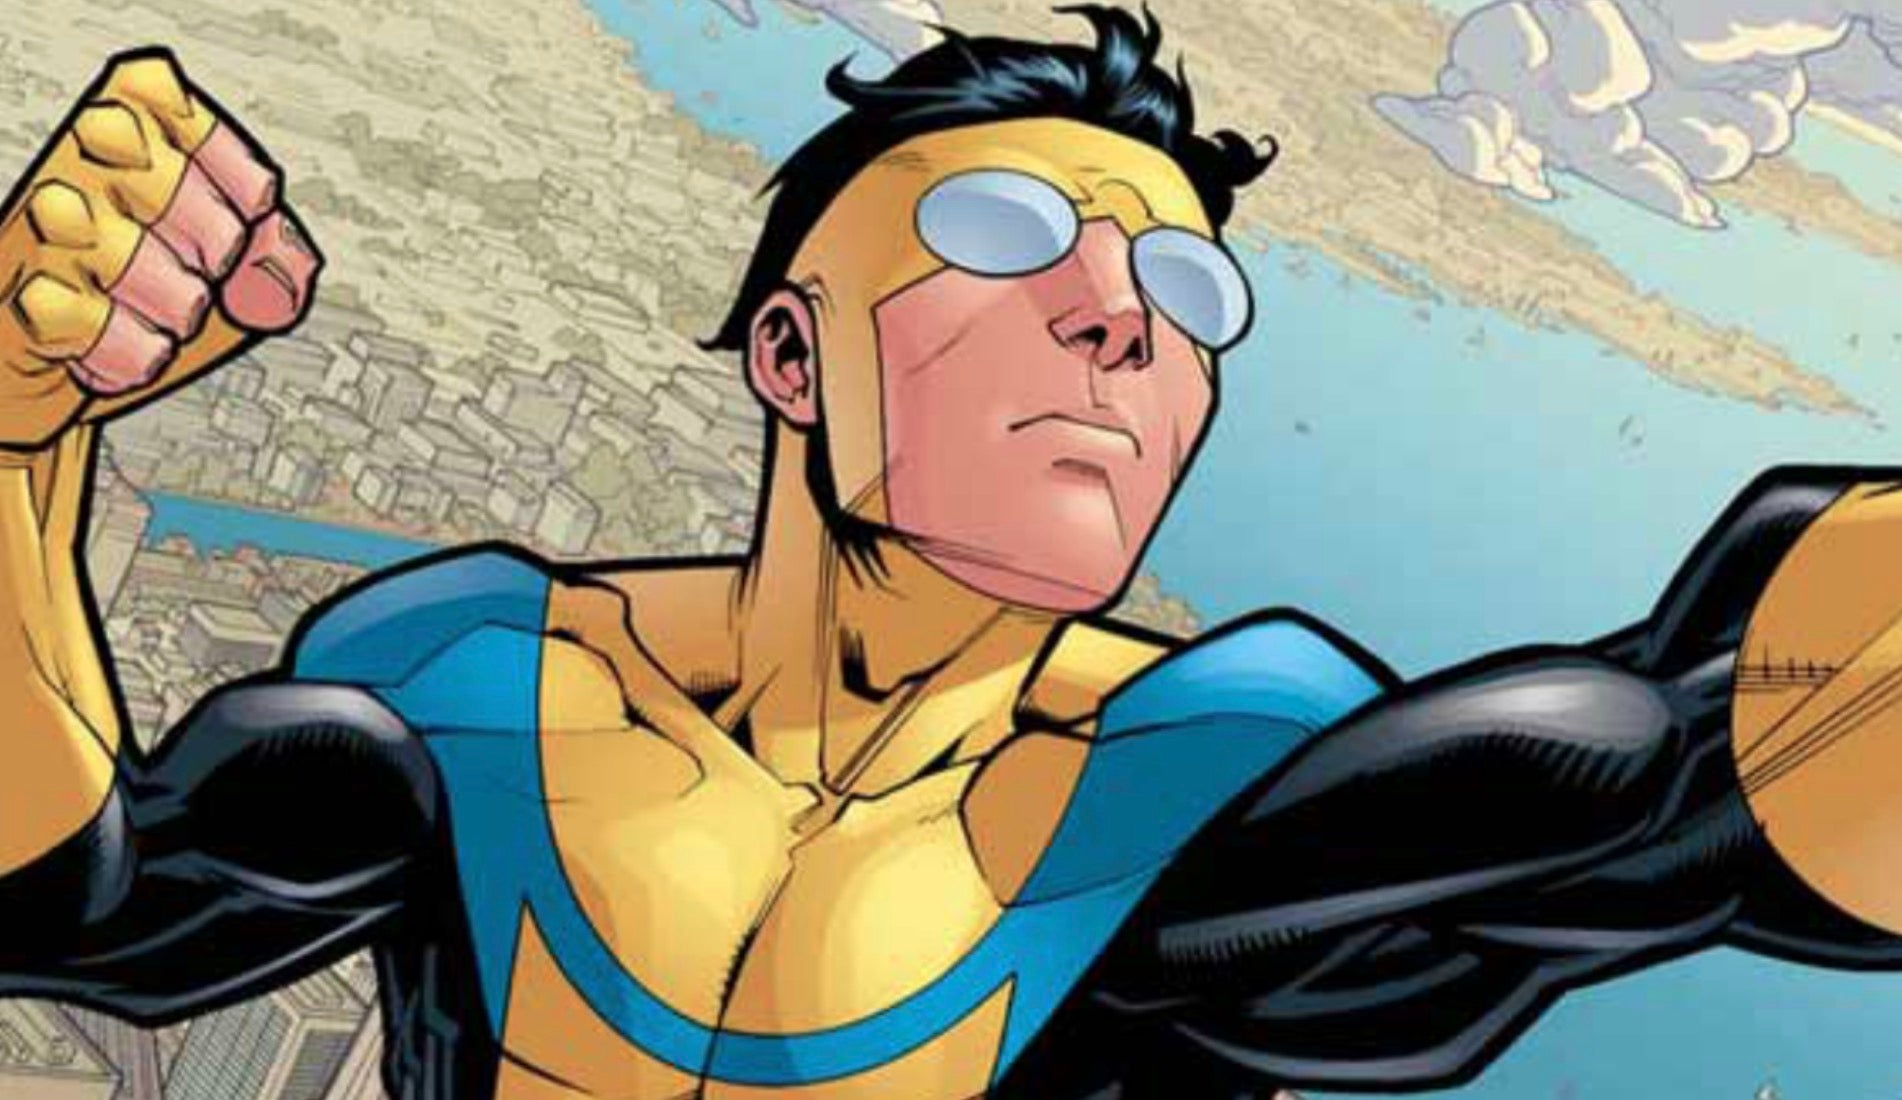 The Voice Cast For Robert Kirkman's Invincible Is Unbelievable